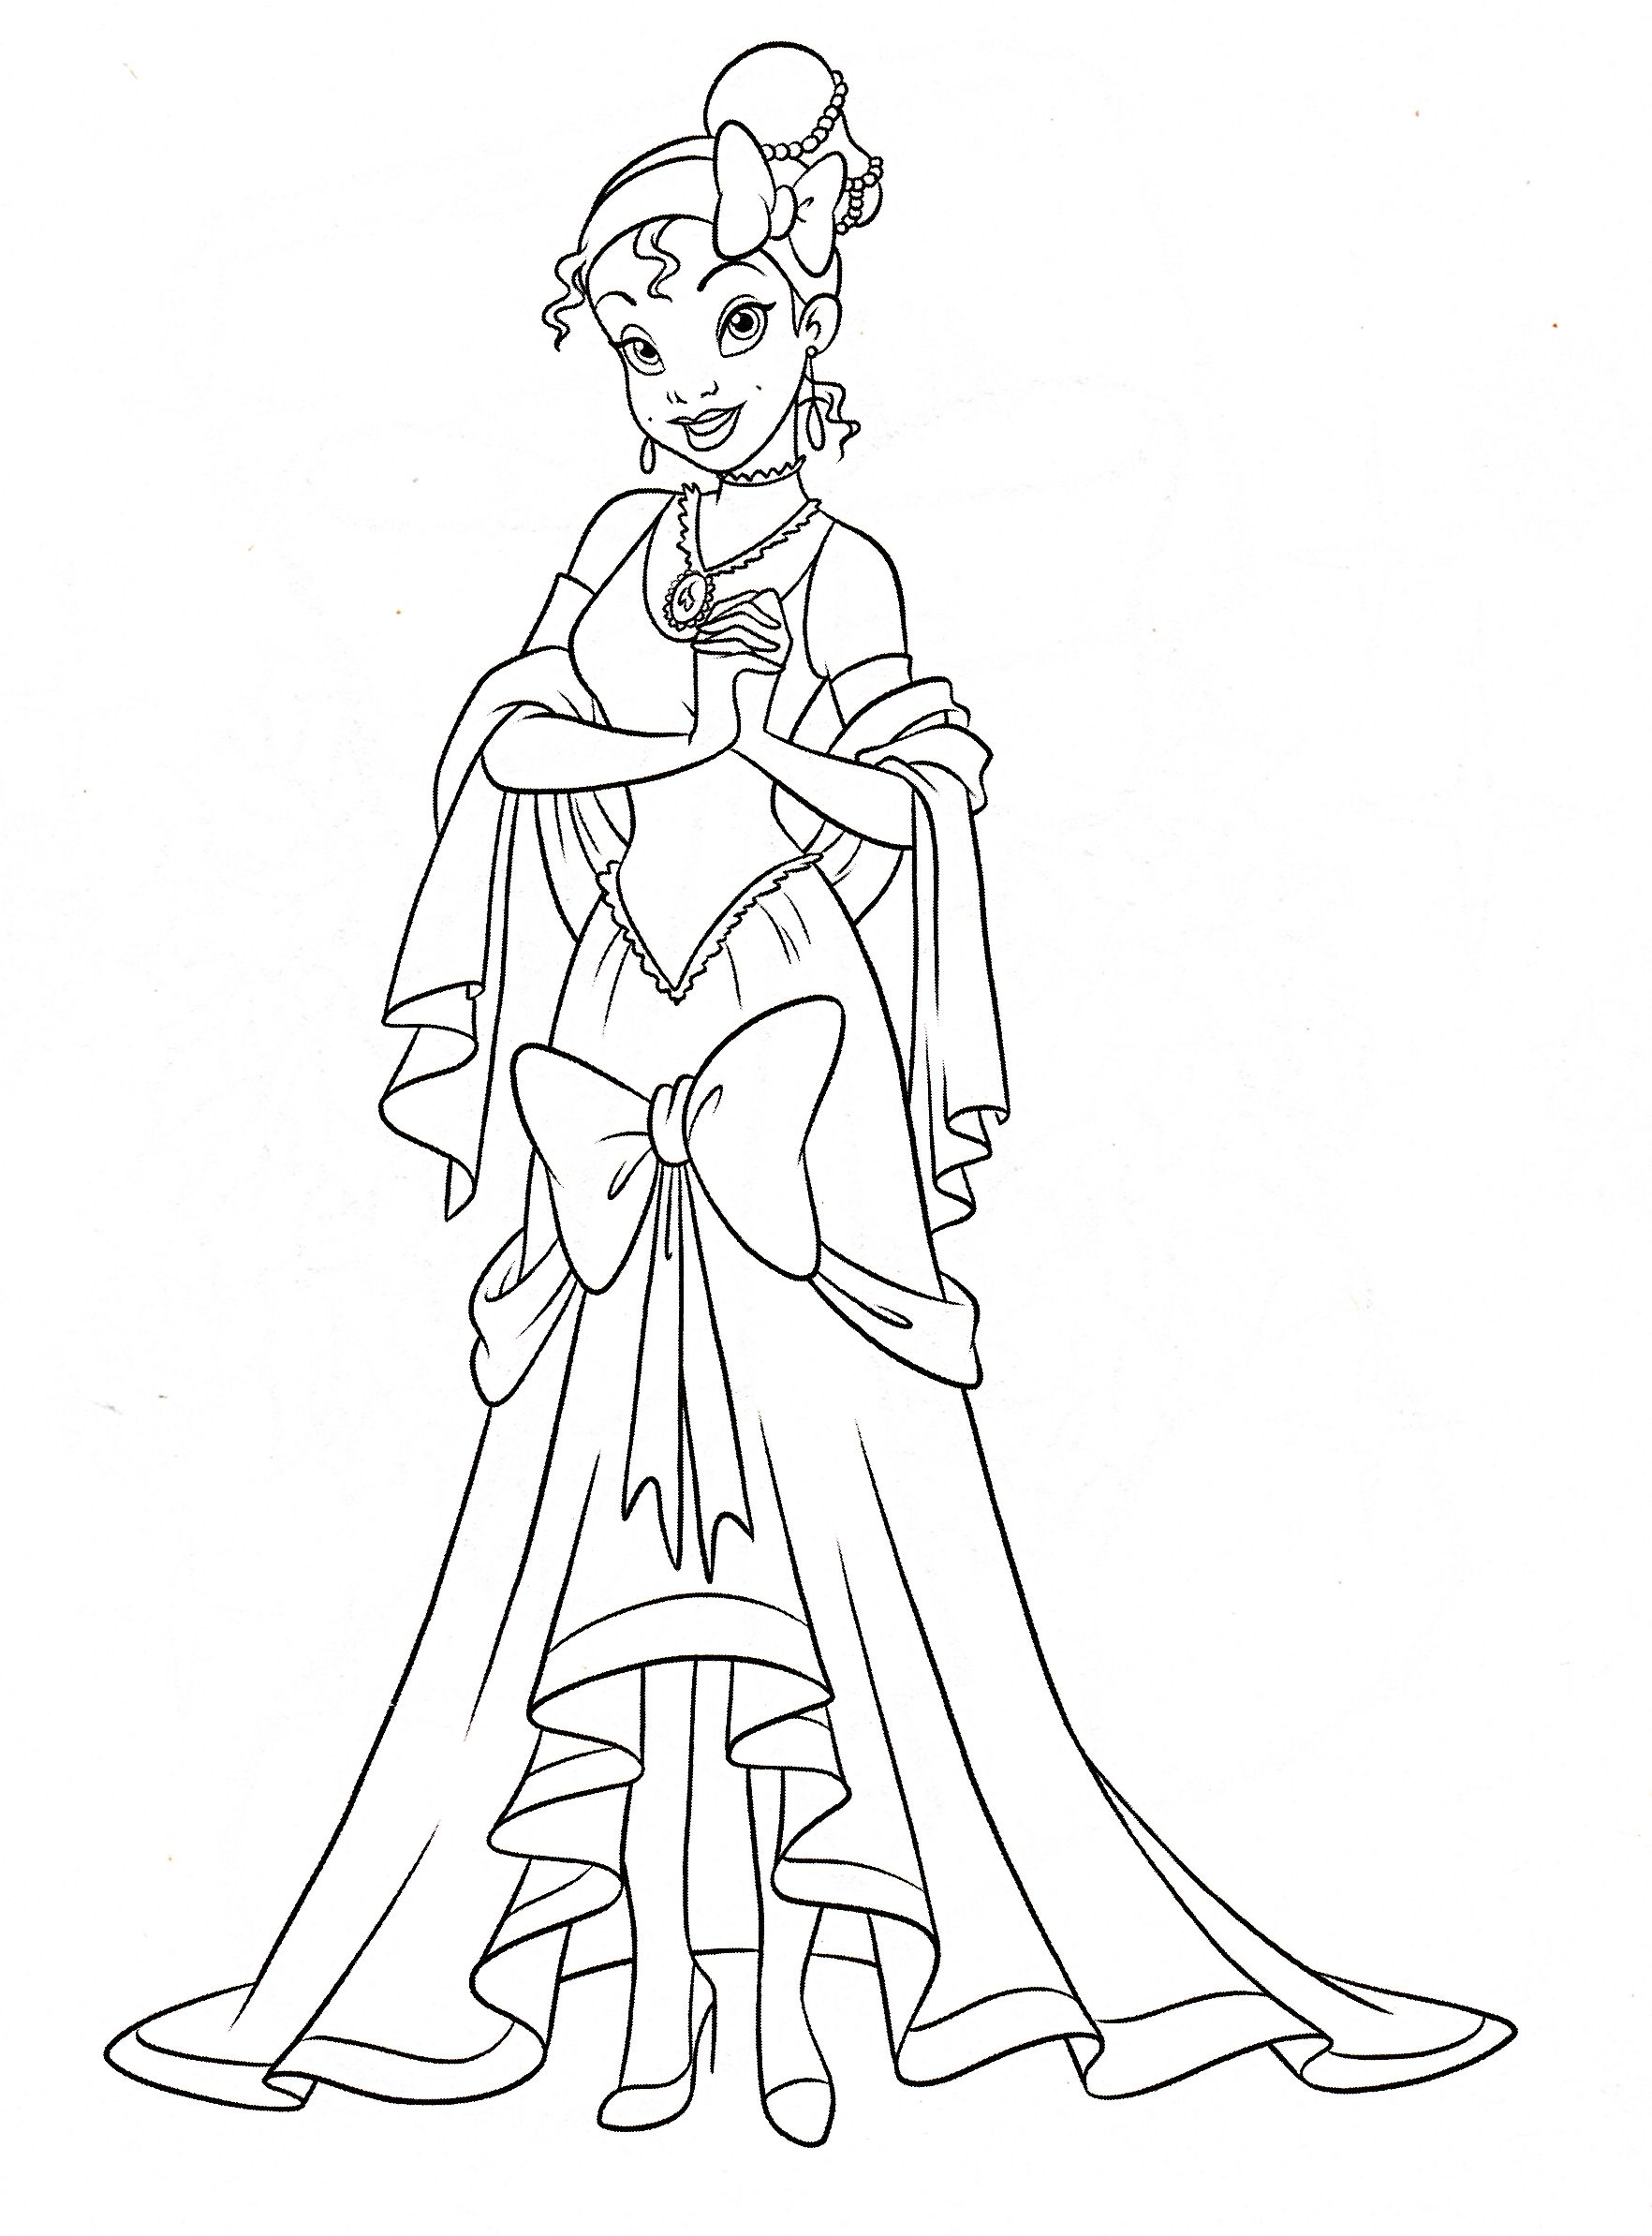 Kleurplaten Prinses Tiana.This Beautiful Tiana The Princess Coloring Page From Princess And